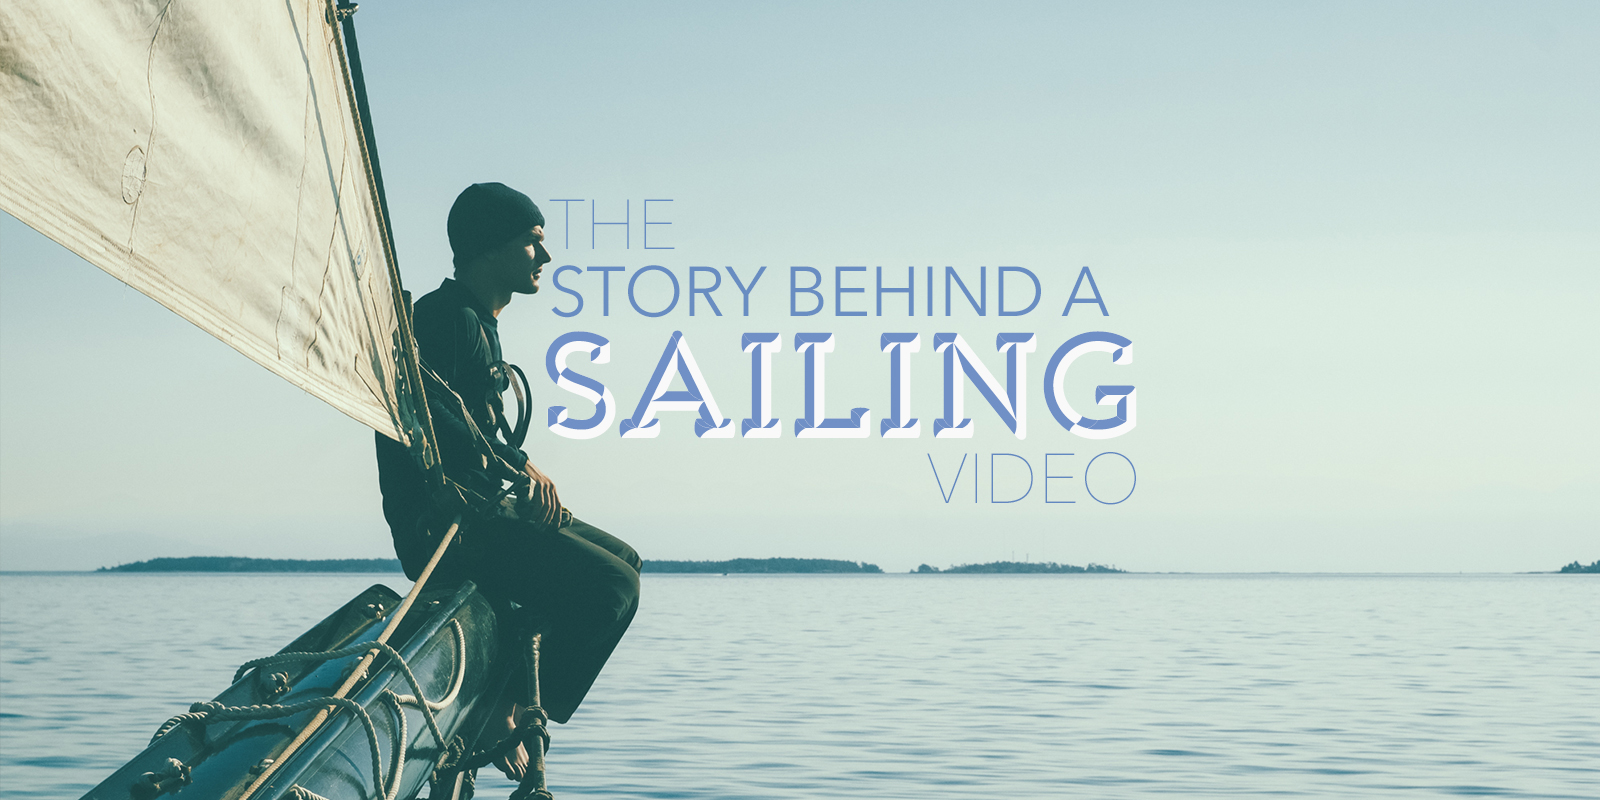 The Story Behind Sailing Video